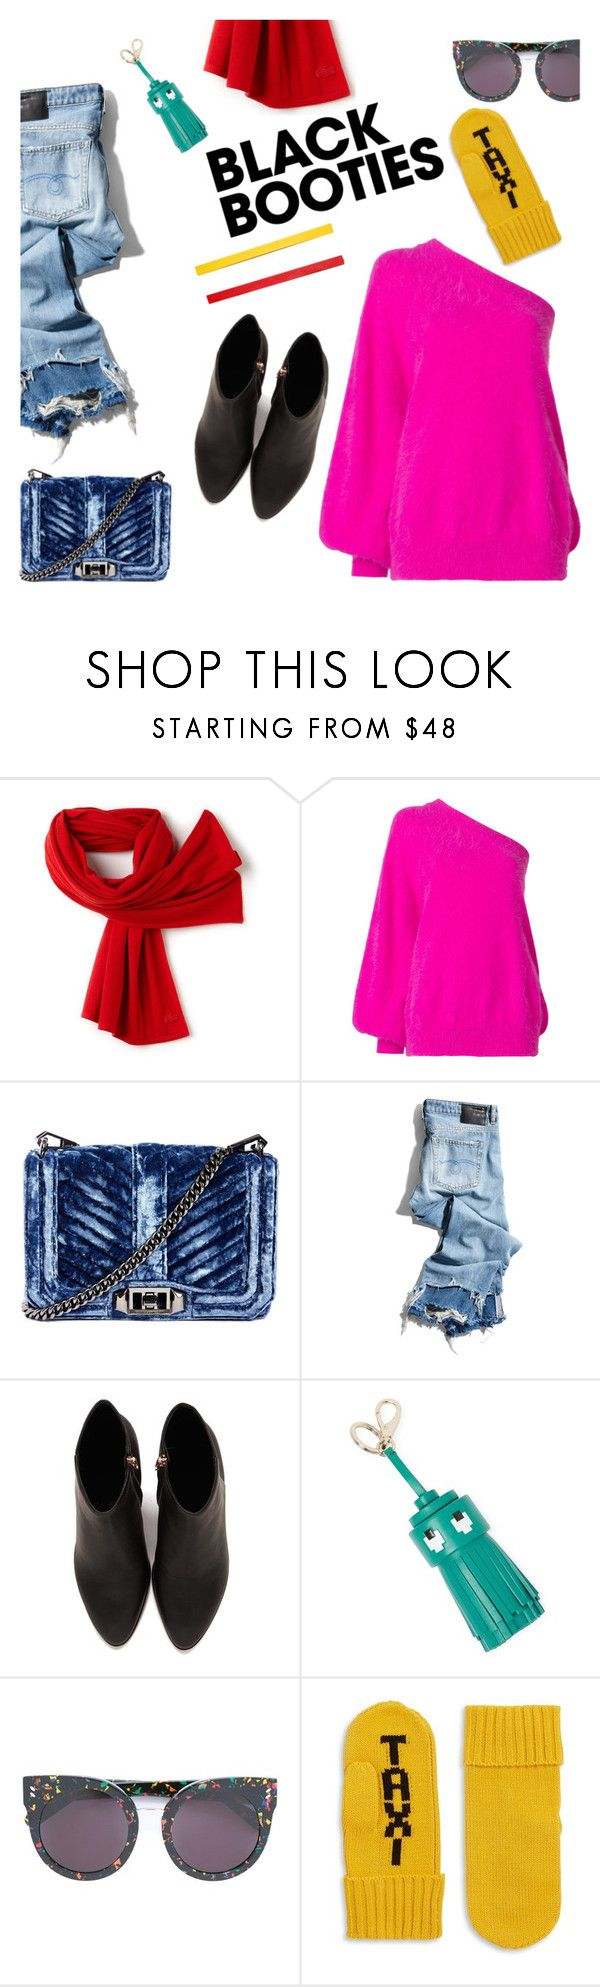 """""""no need to shout."""" by gabrielleleroy ❤ liked on Polyvore featuring Lacoste, Emilio Pucci, Rebecca Minkoff, R13, Alexander Wang, Anya Hindmarch and Kate Spade"""